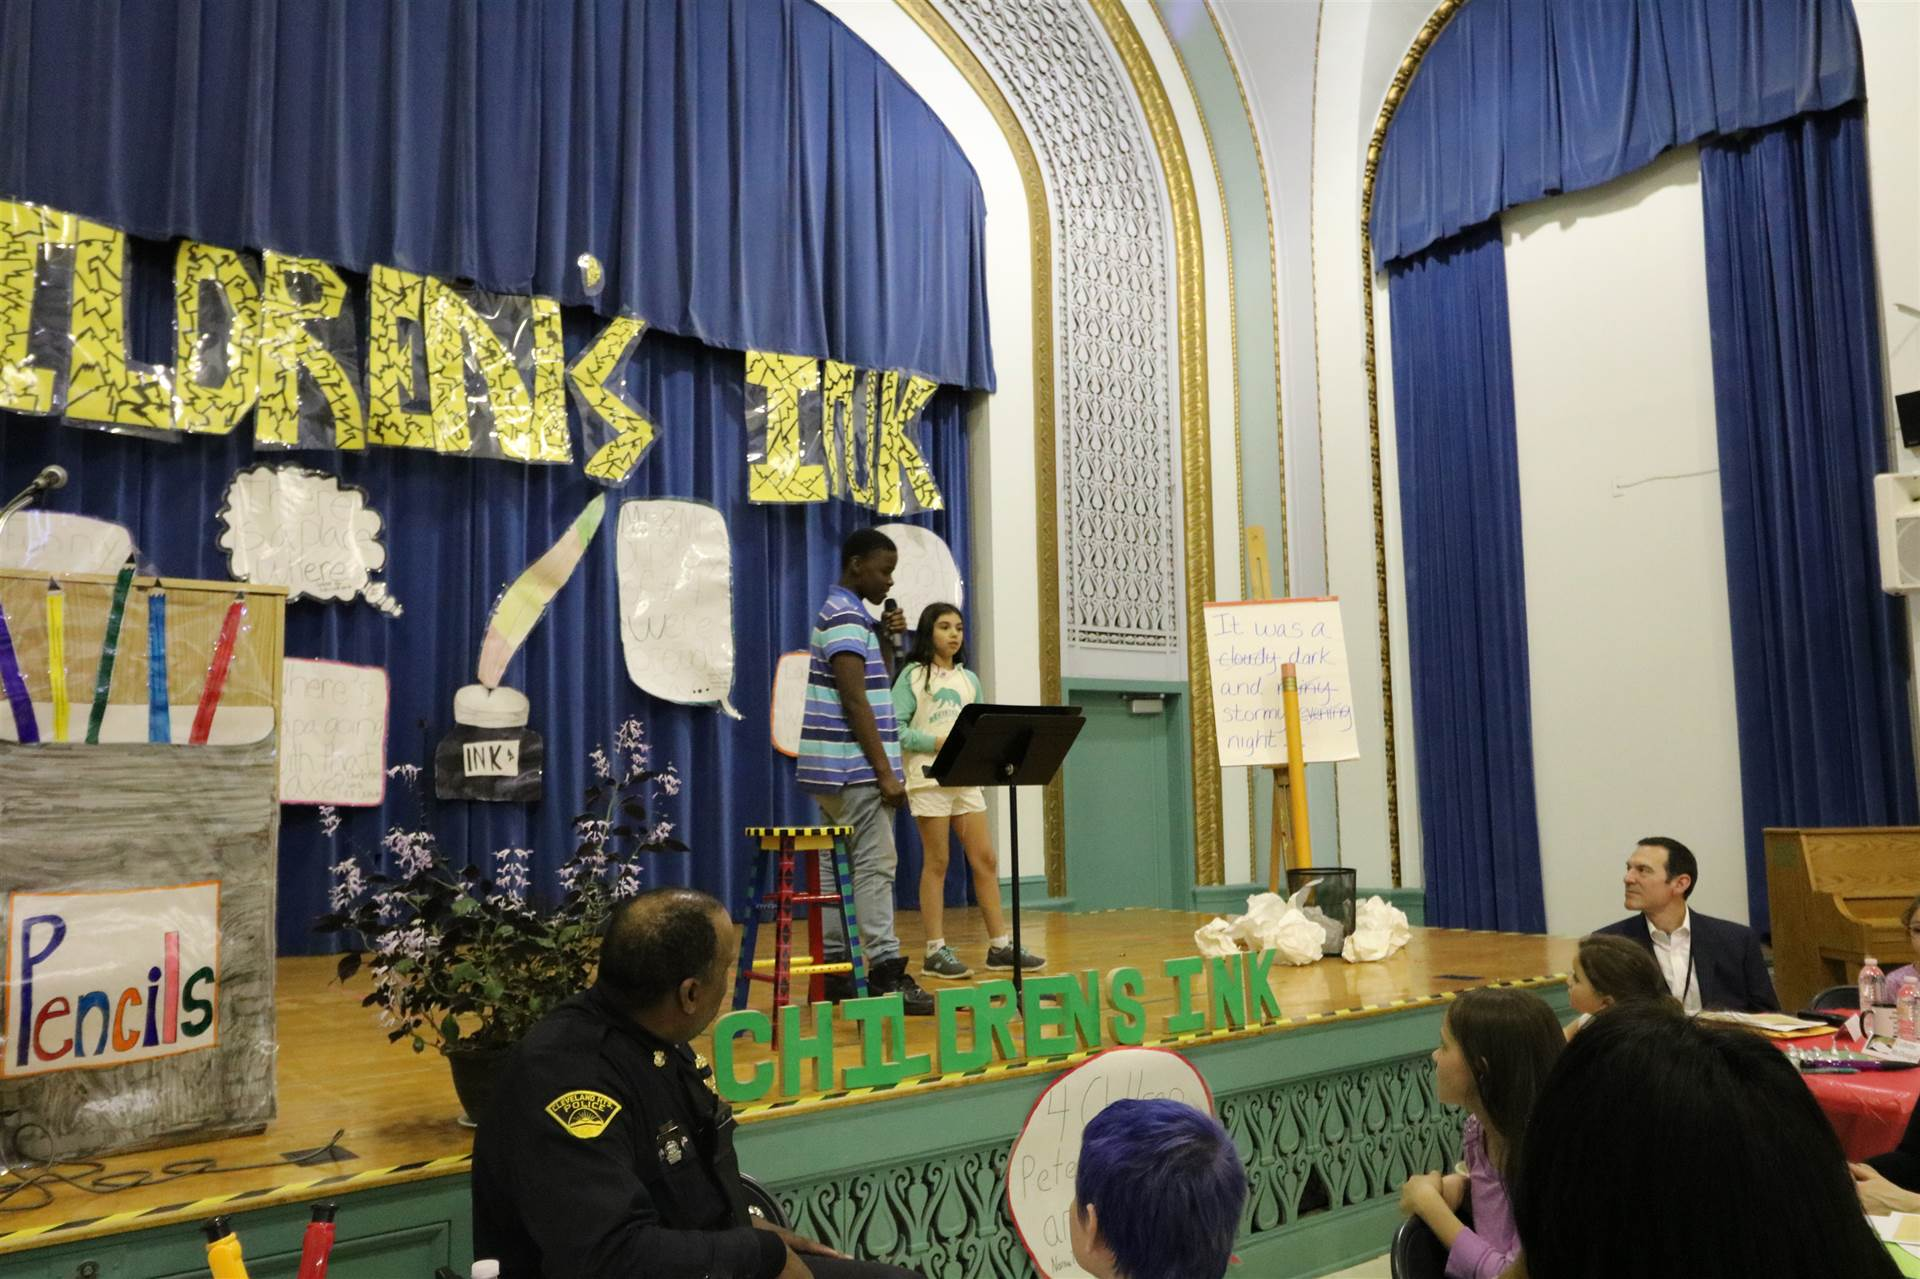 Community guests read students' writing on stage at Children's Ink